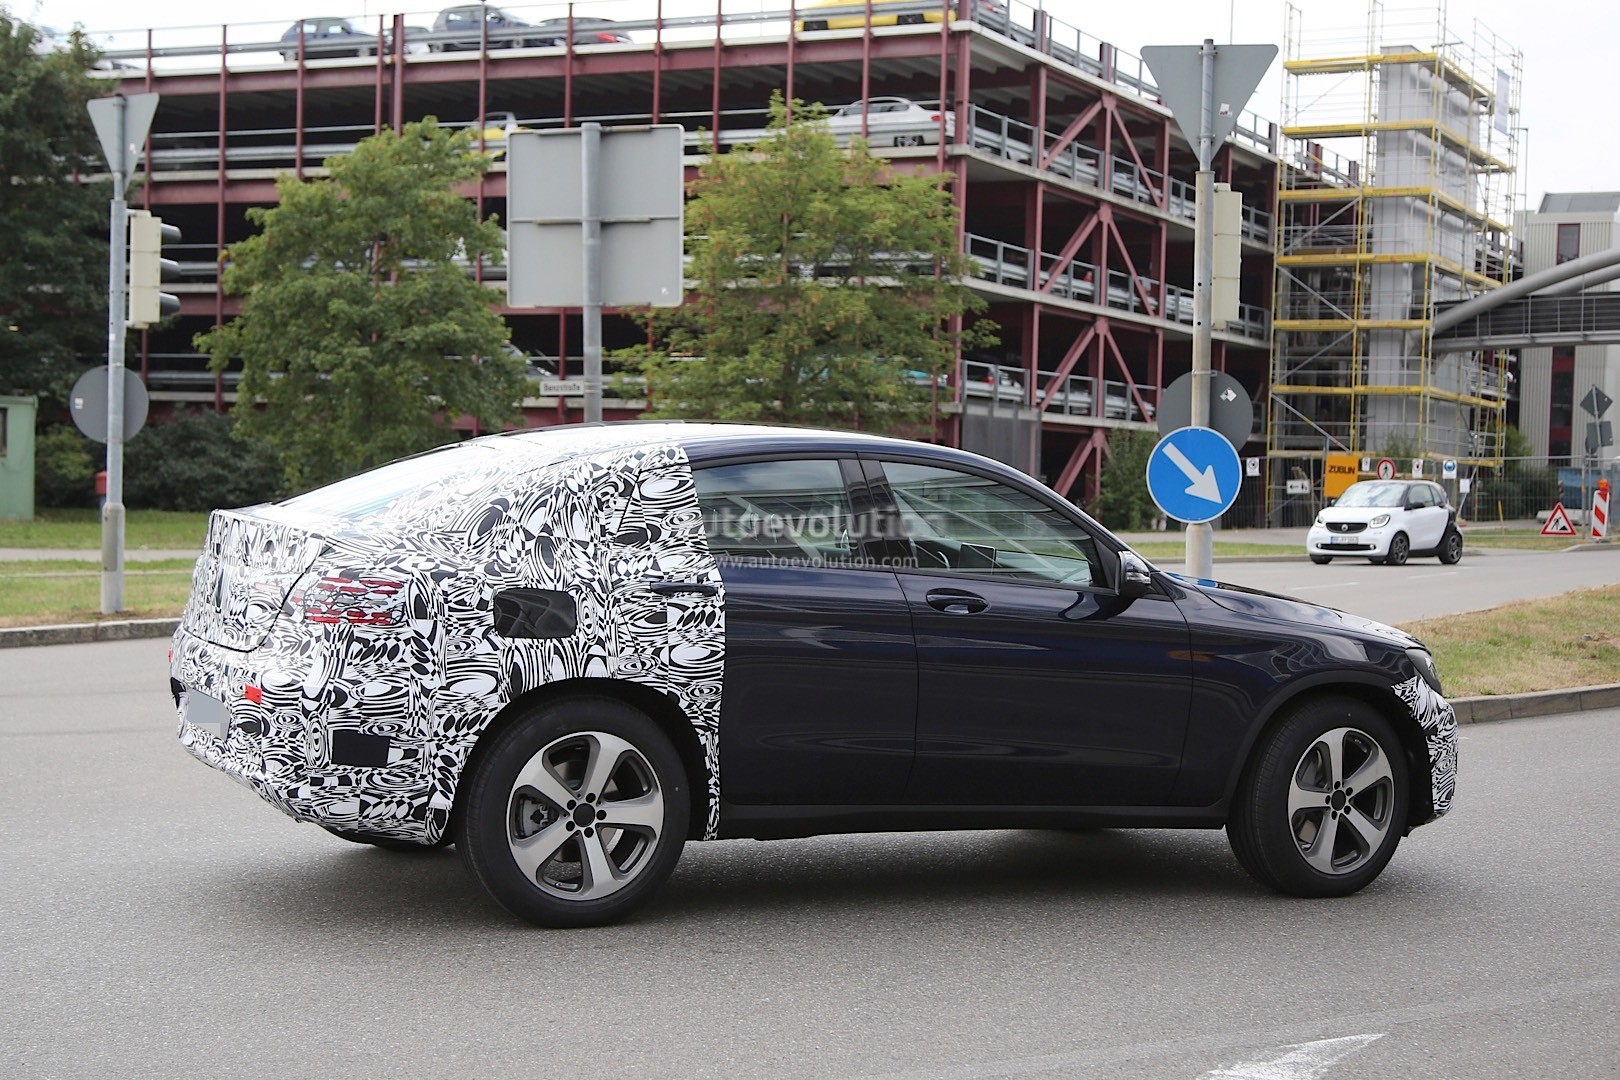 Spyshots 2016 Mercedes Benz Glc Coupe Spotted While Testing Expect